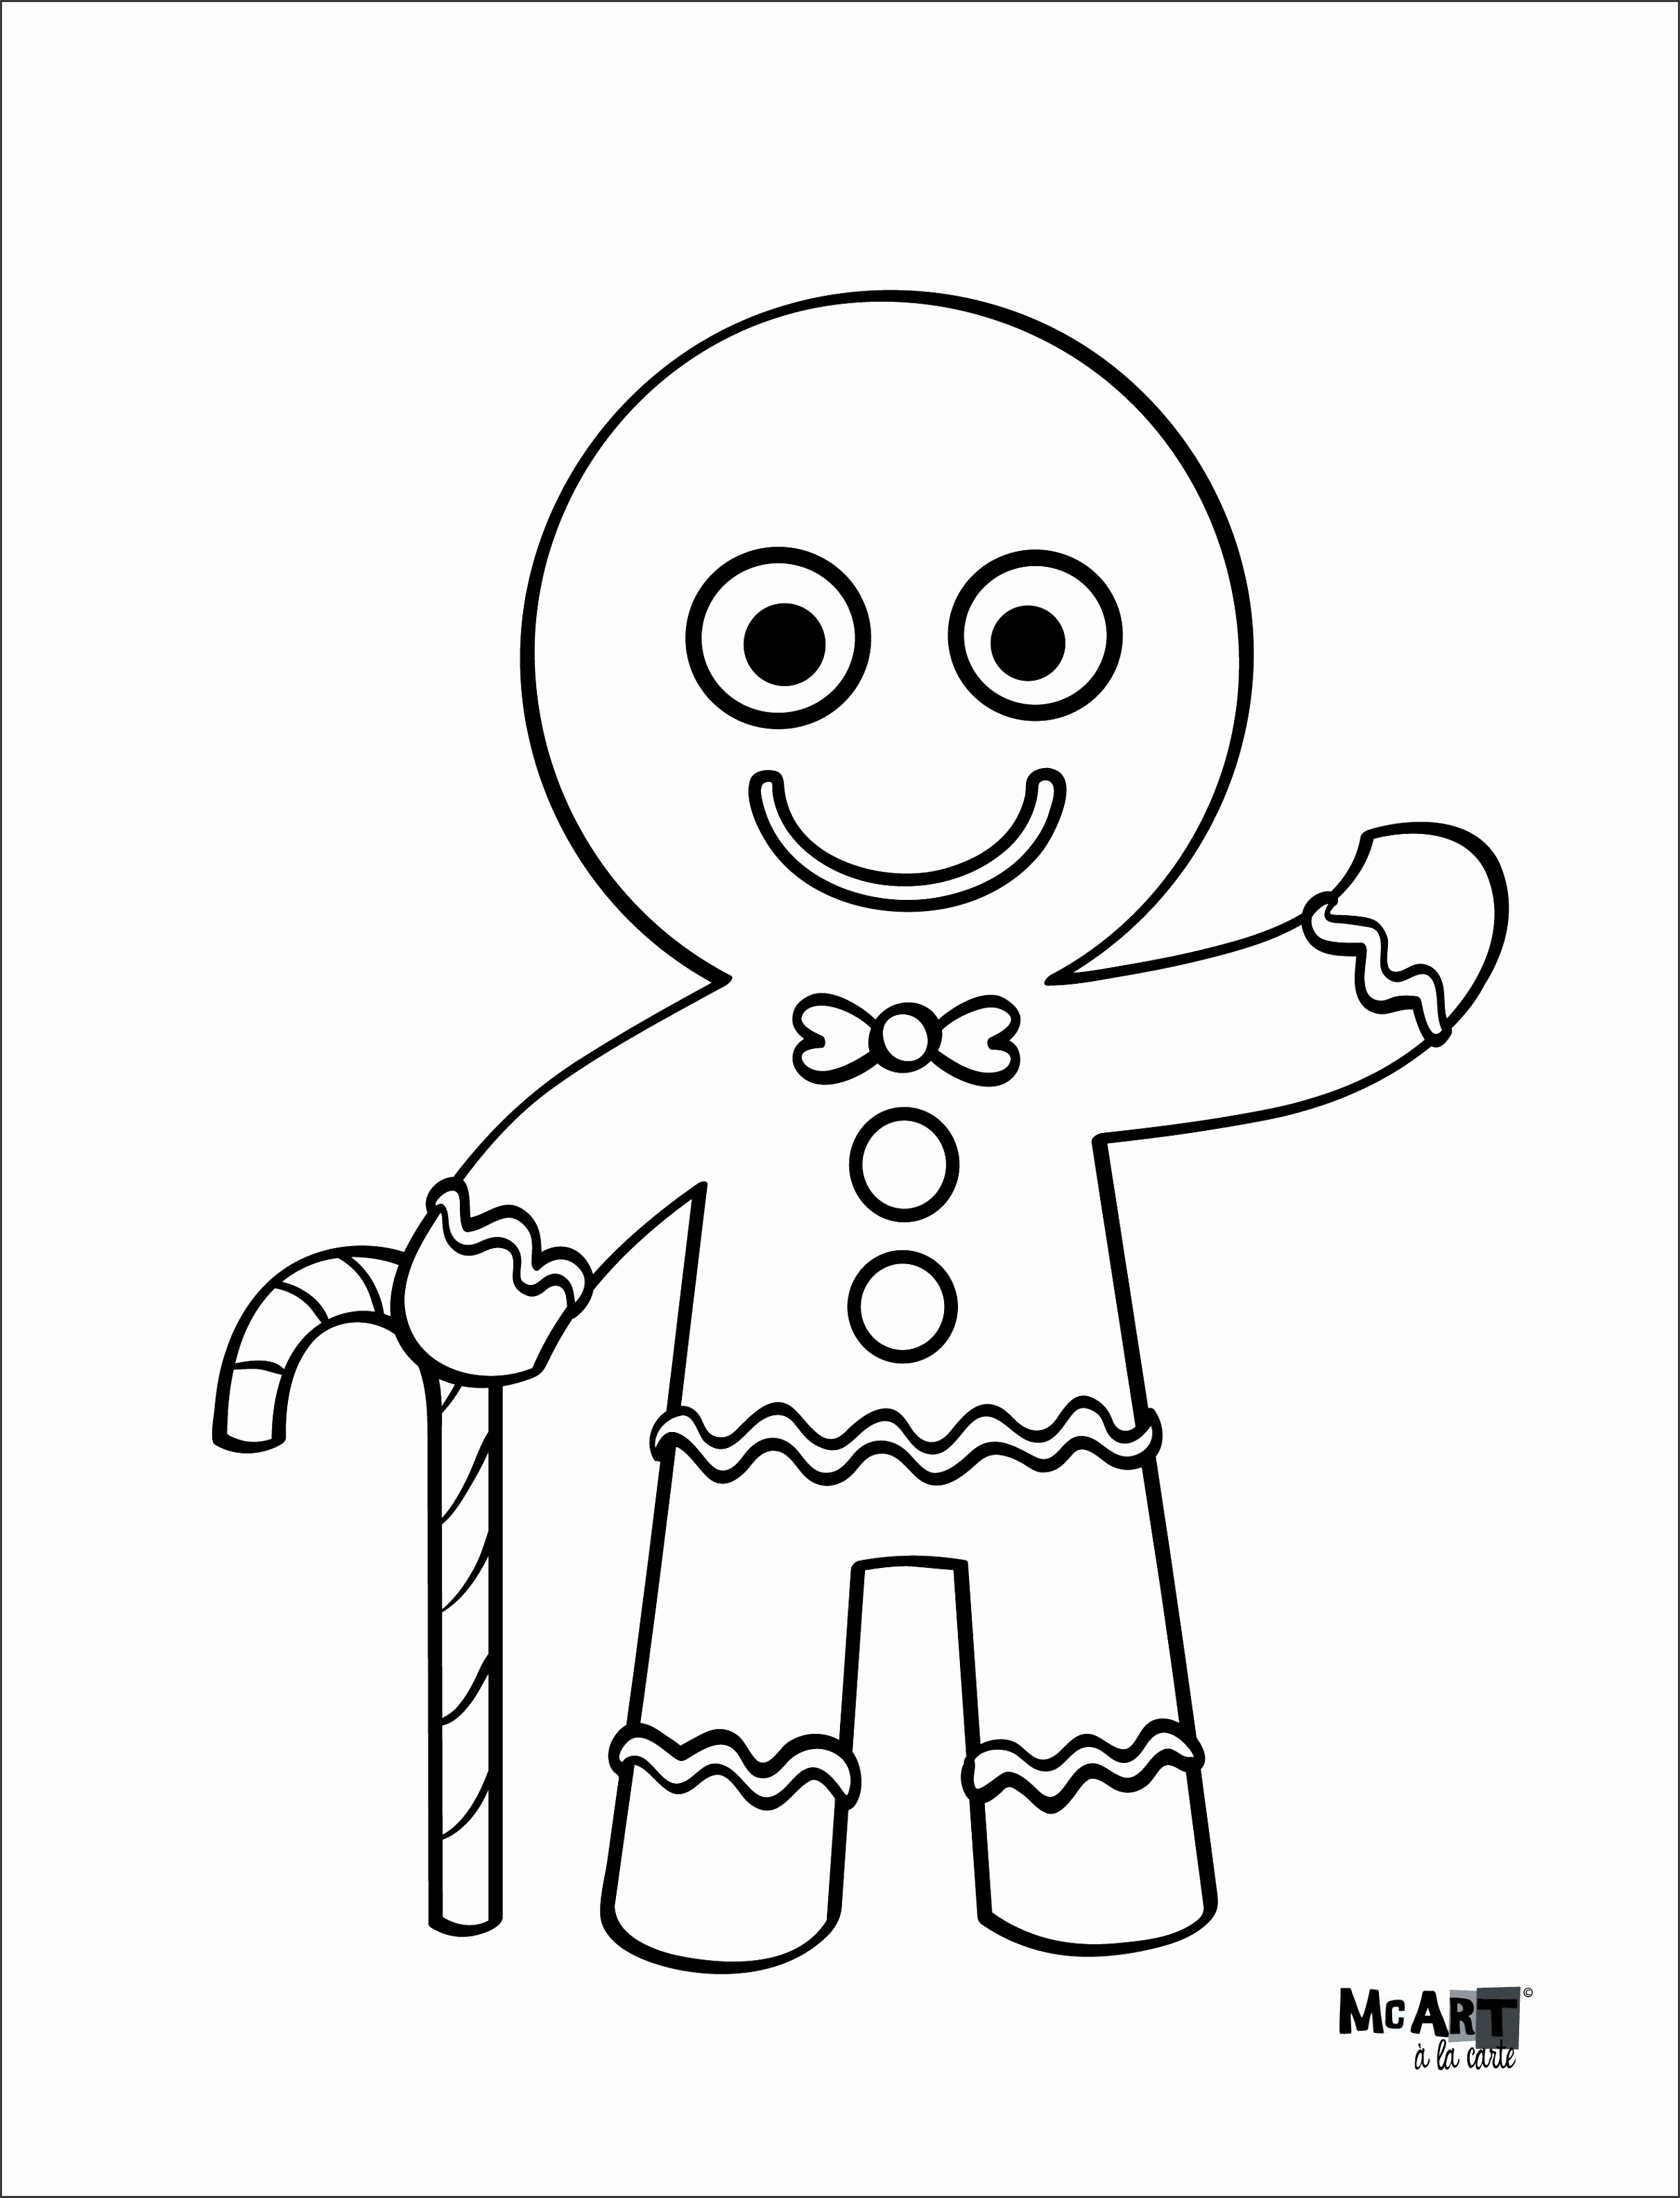 Gingerbread Man Coloring Page Printable Mask Template Small Full Size